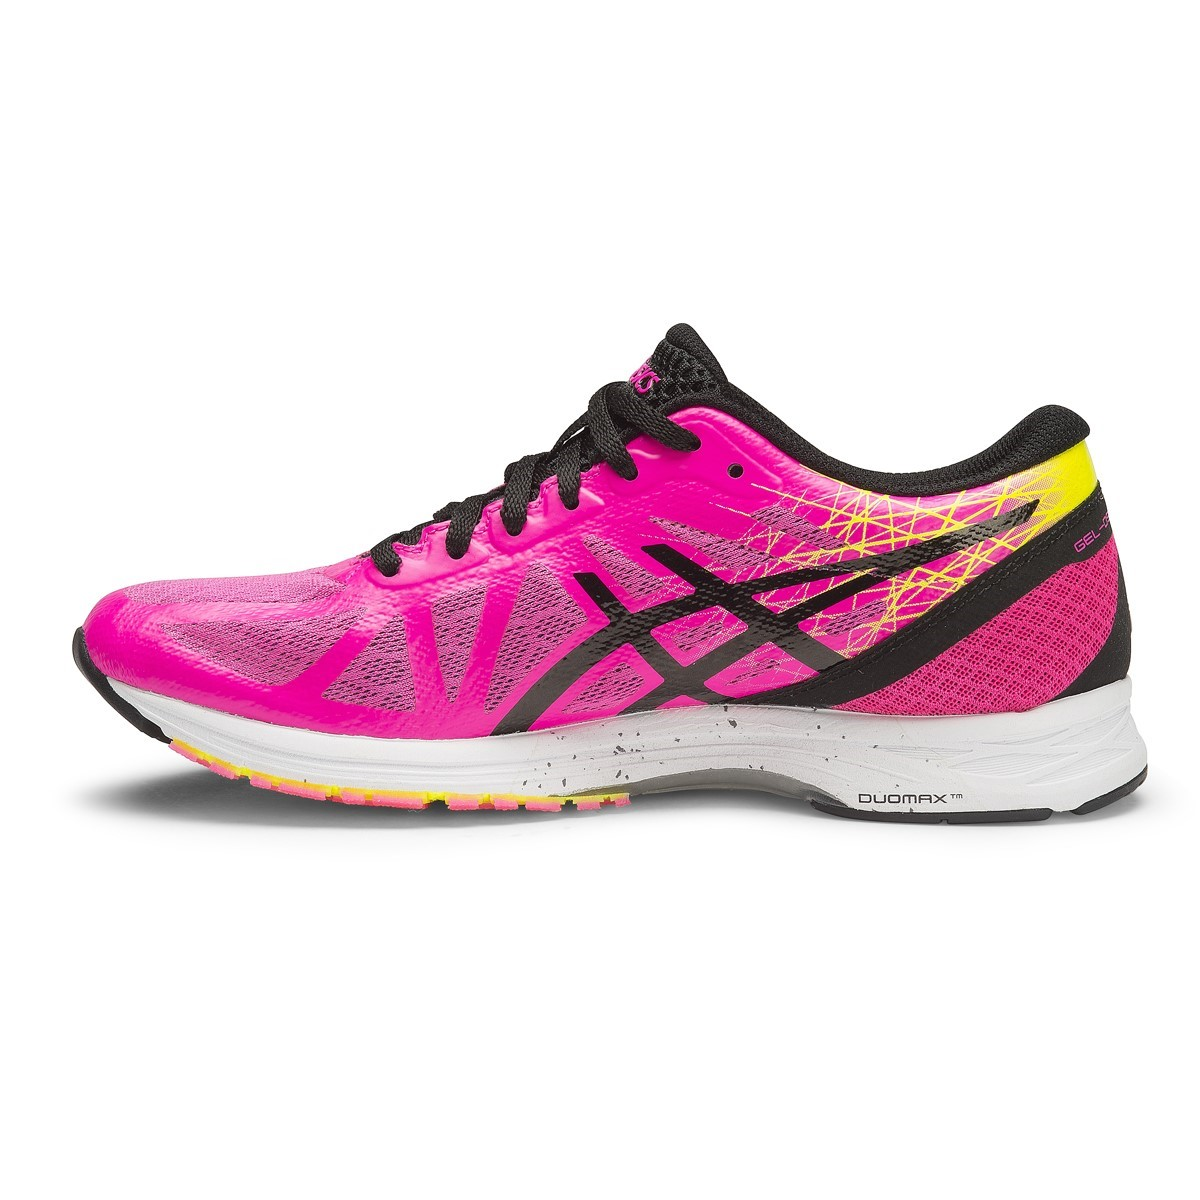 fdacb1ebfb02 Asics Gel DS Racer 11 - Womens Running Shoes - Hot Pink Black Flash ...